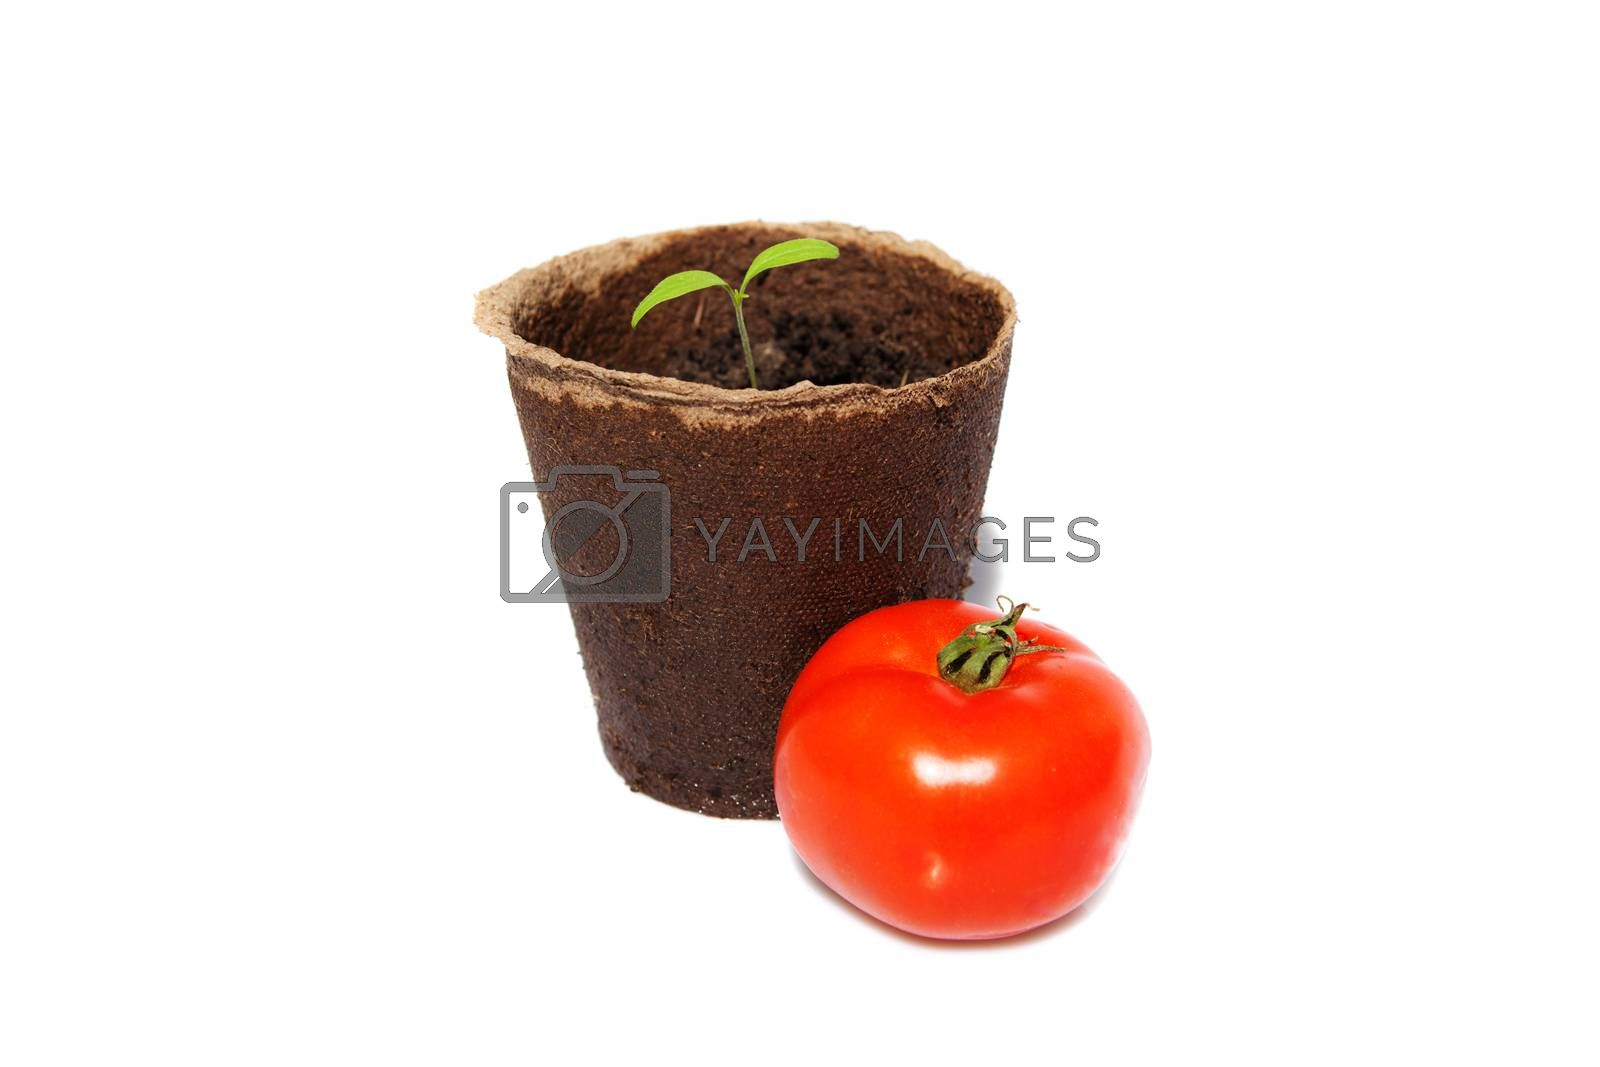 new sprout of tomato and the same vegetable